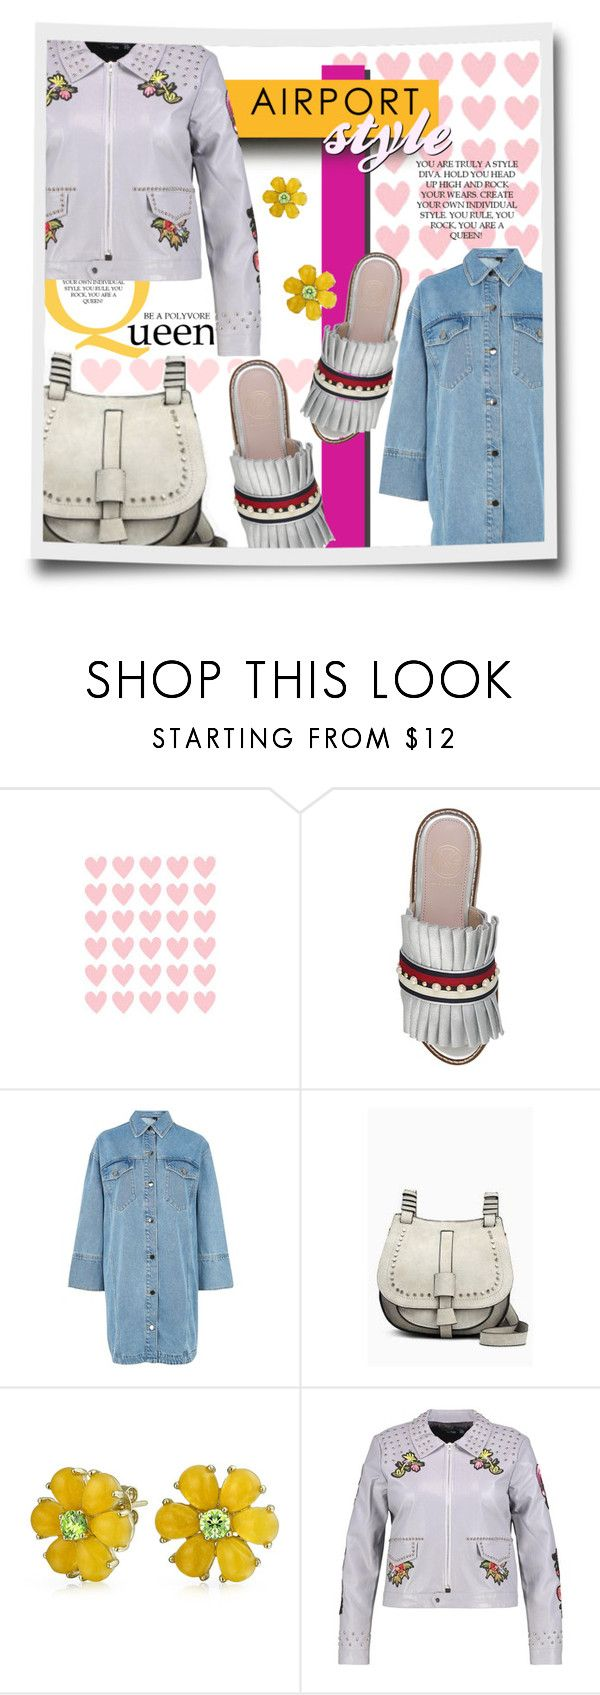 """Spring-Summer 17 (Plus Size Chic)"" by foolsuk ❤ liked on Polyvore featuring KG Kurt Geiger, Topshop, Bling Jewelry and Boohoo"